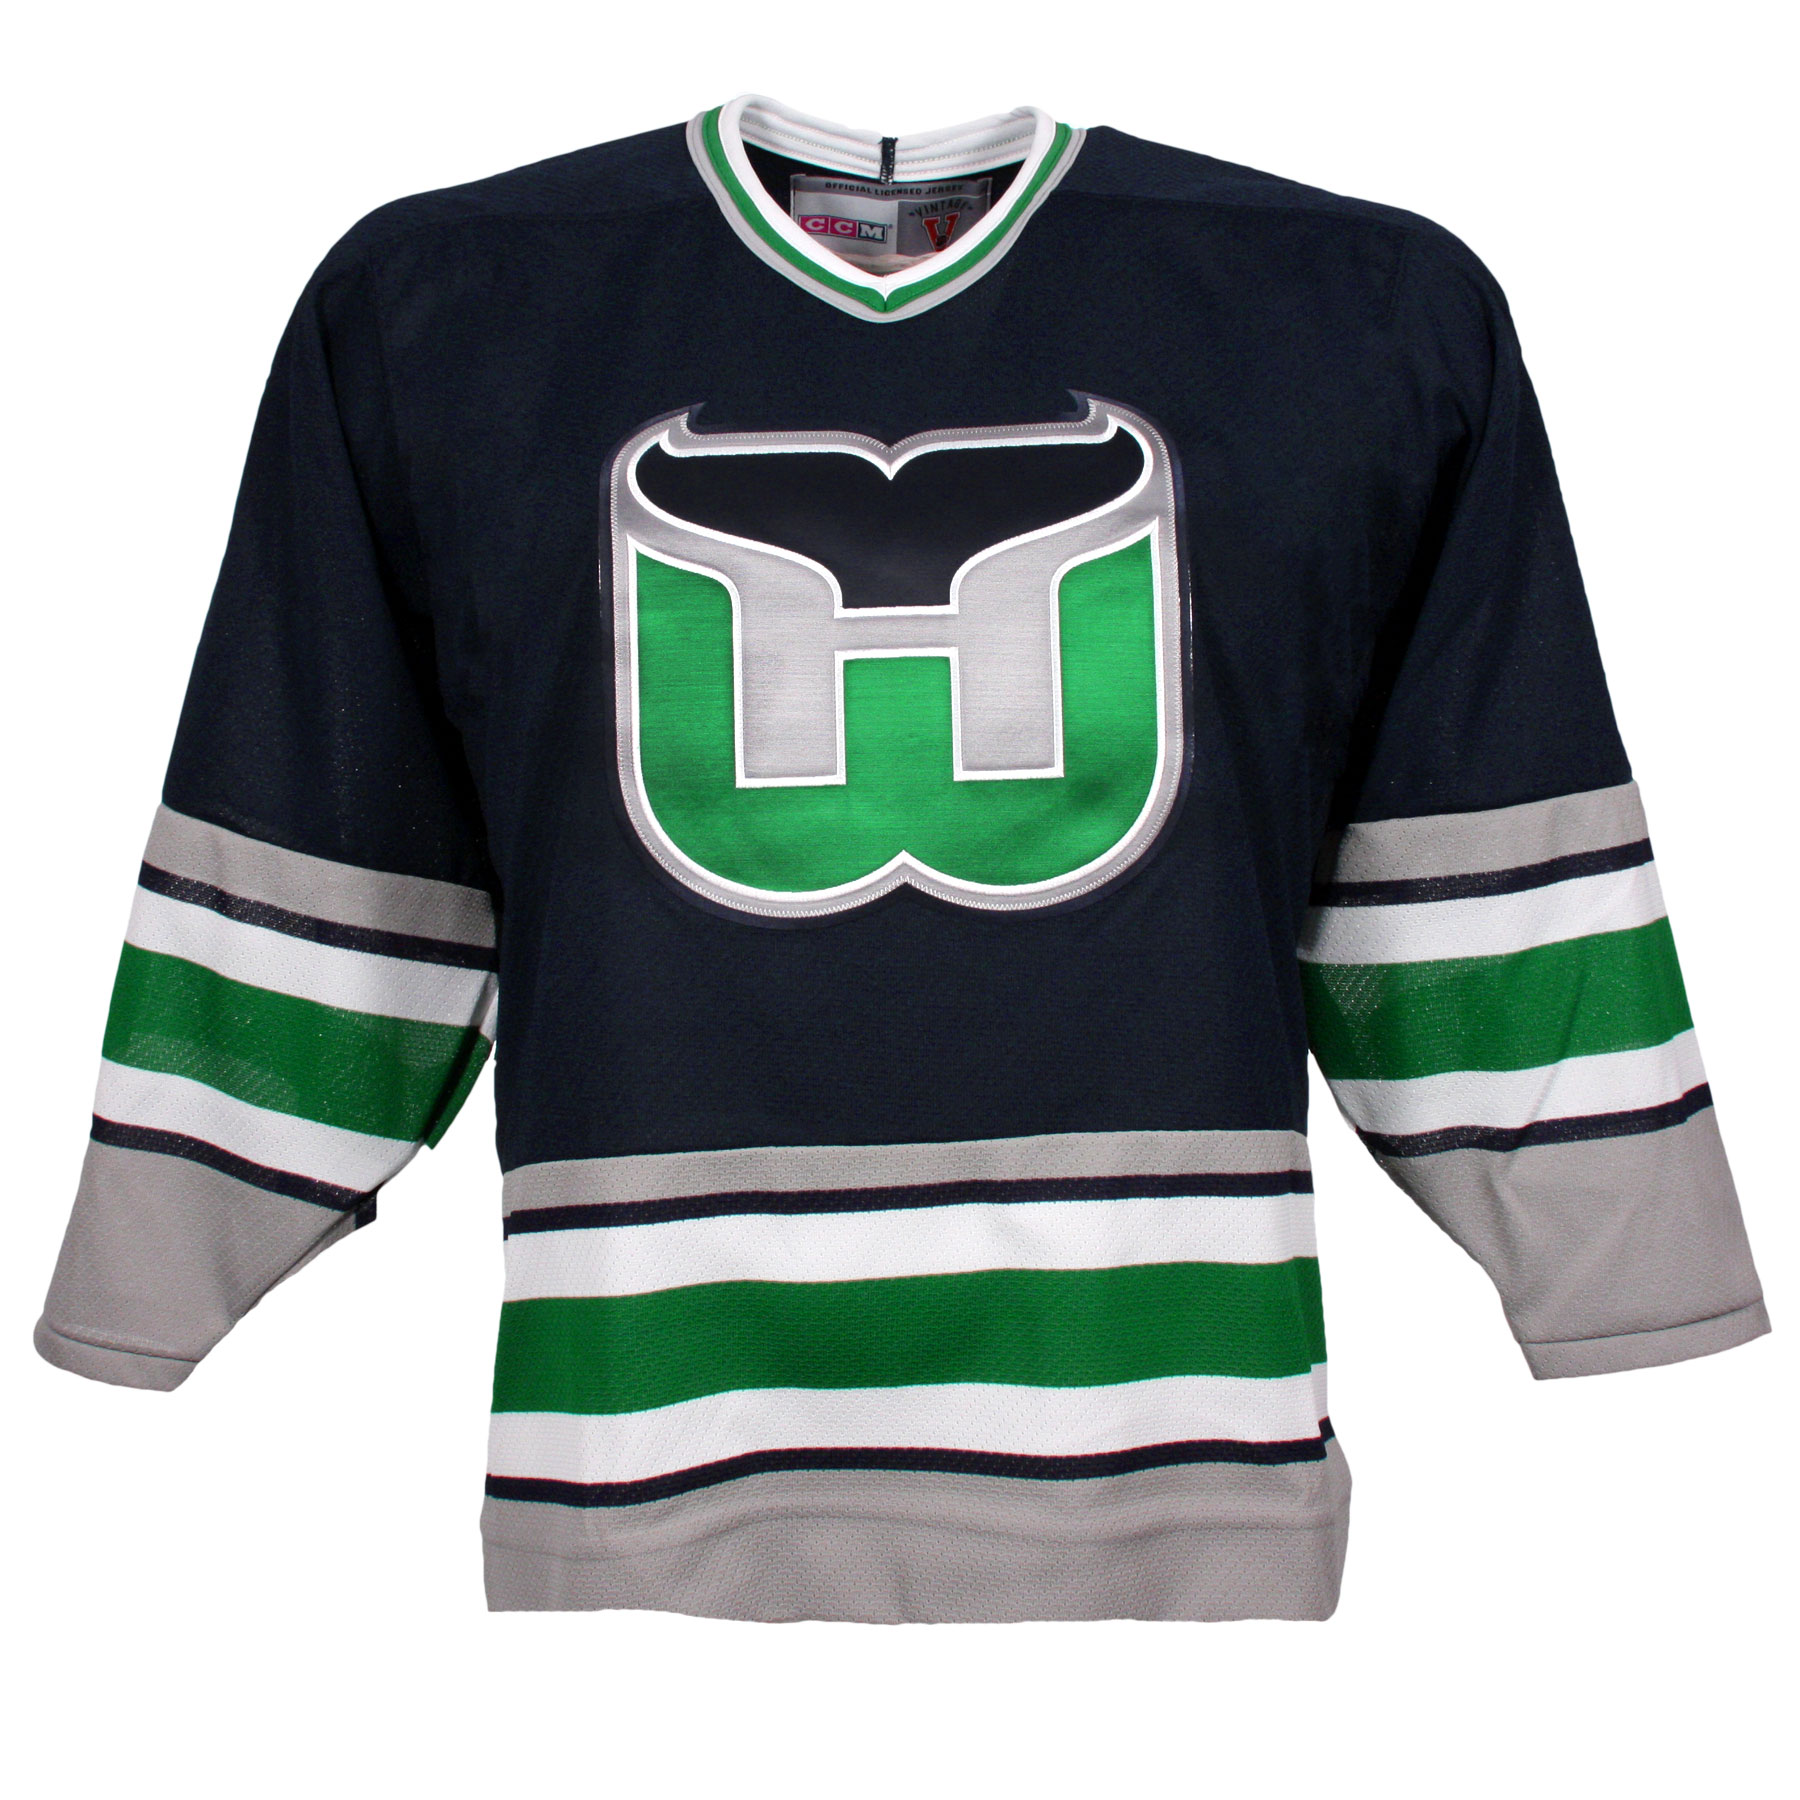 the best attitude 813ce 39aa4 Hartford Whalers Vintage Replica Jersey 1992 (Away) - CCM ...